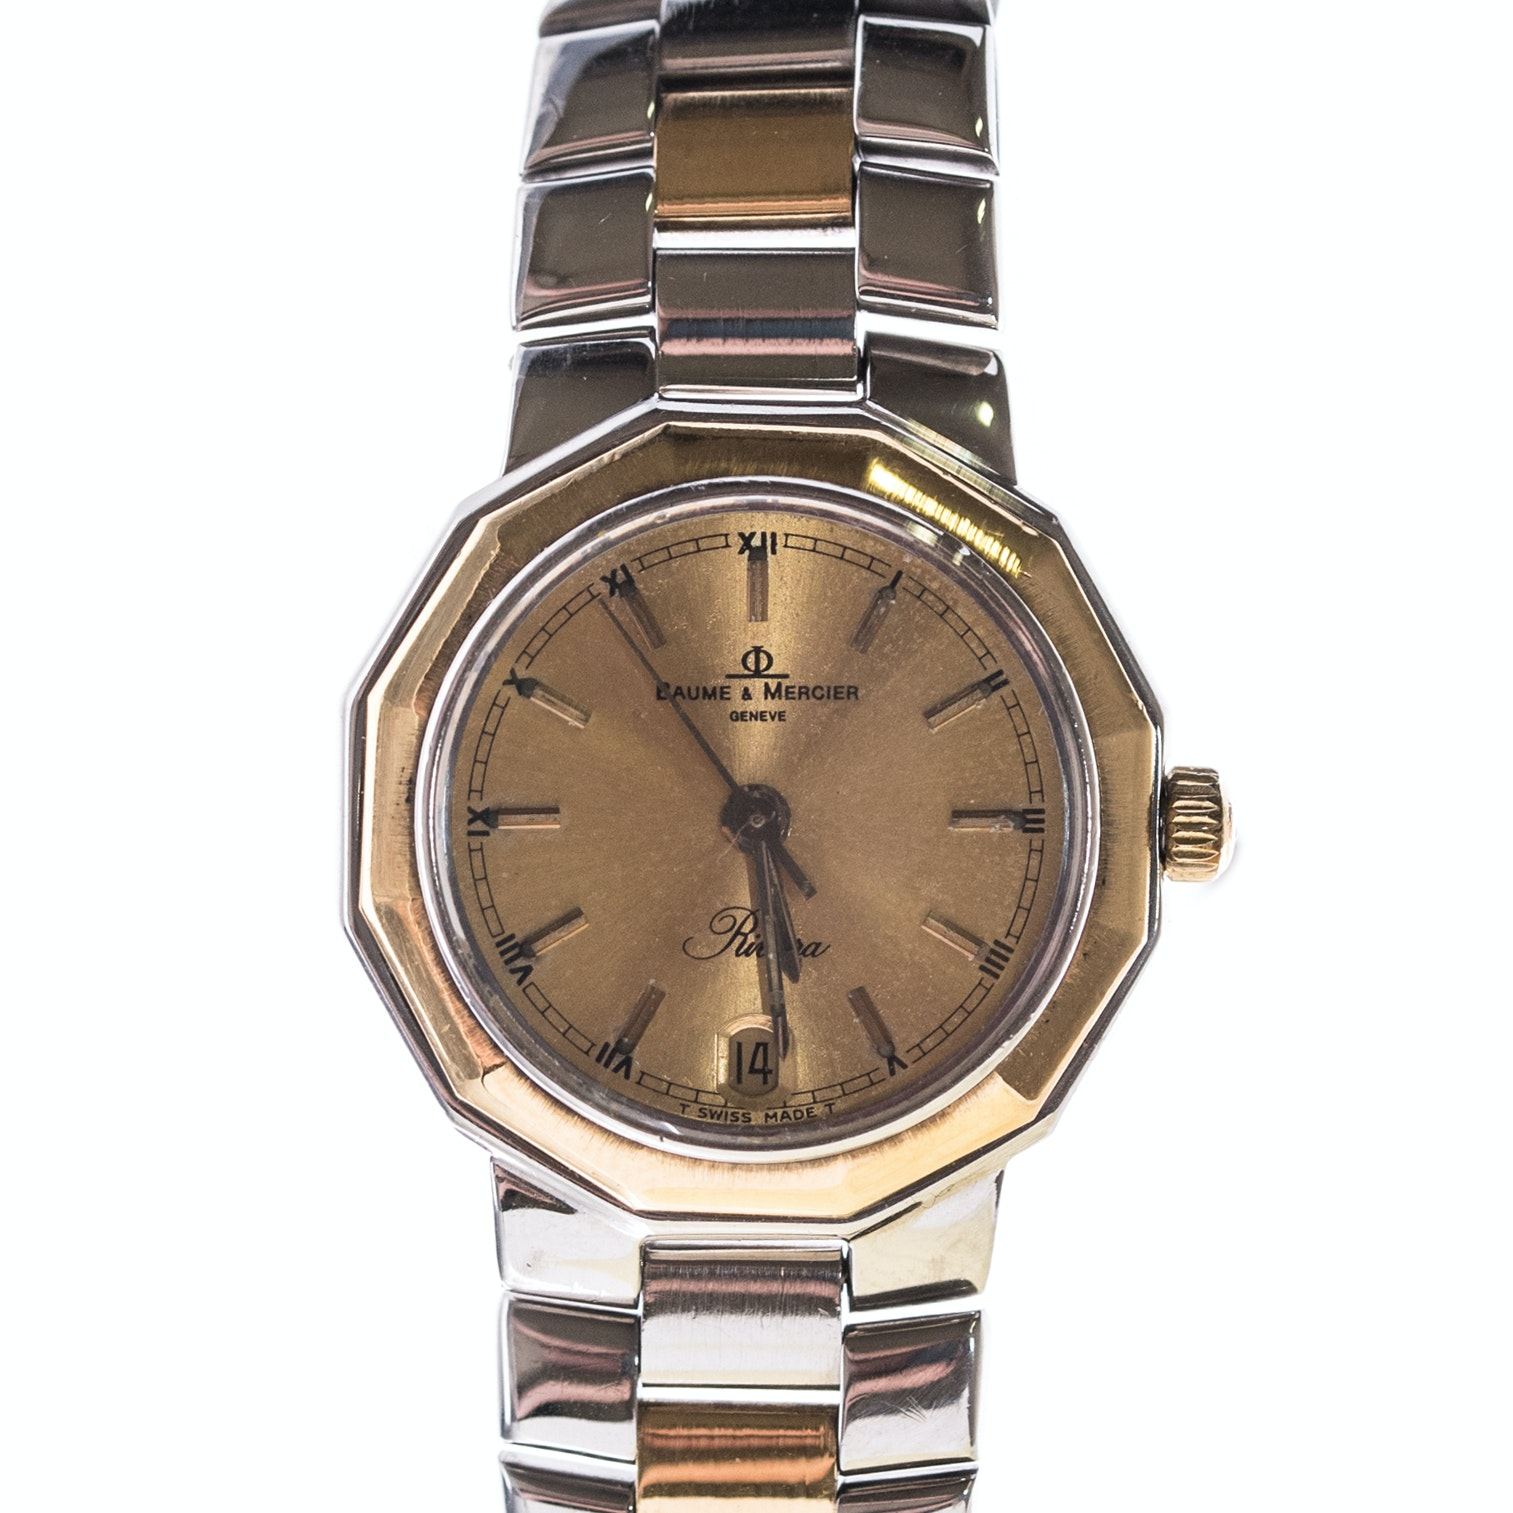 Baume & Mercier Riviera 18K Yellow Gold and Stainless Steel Wristwatch